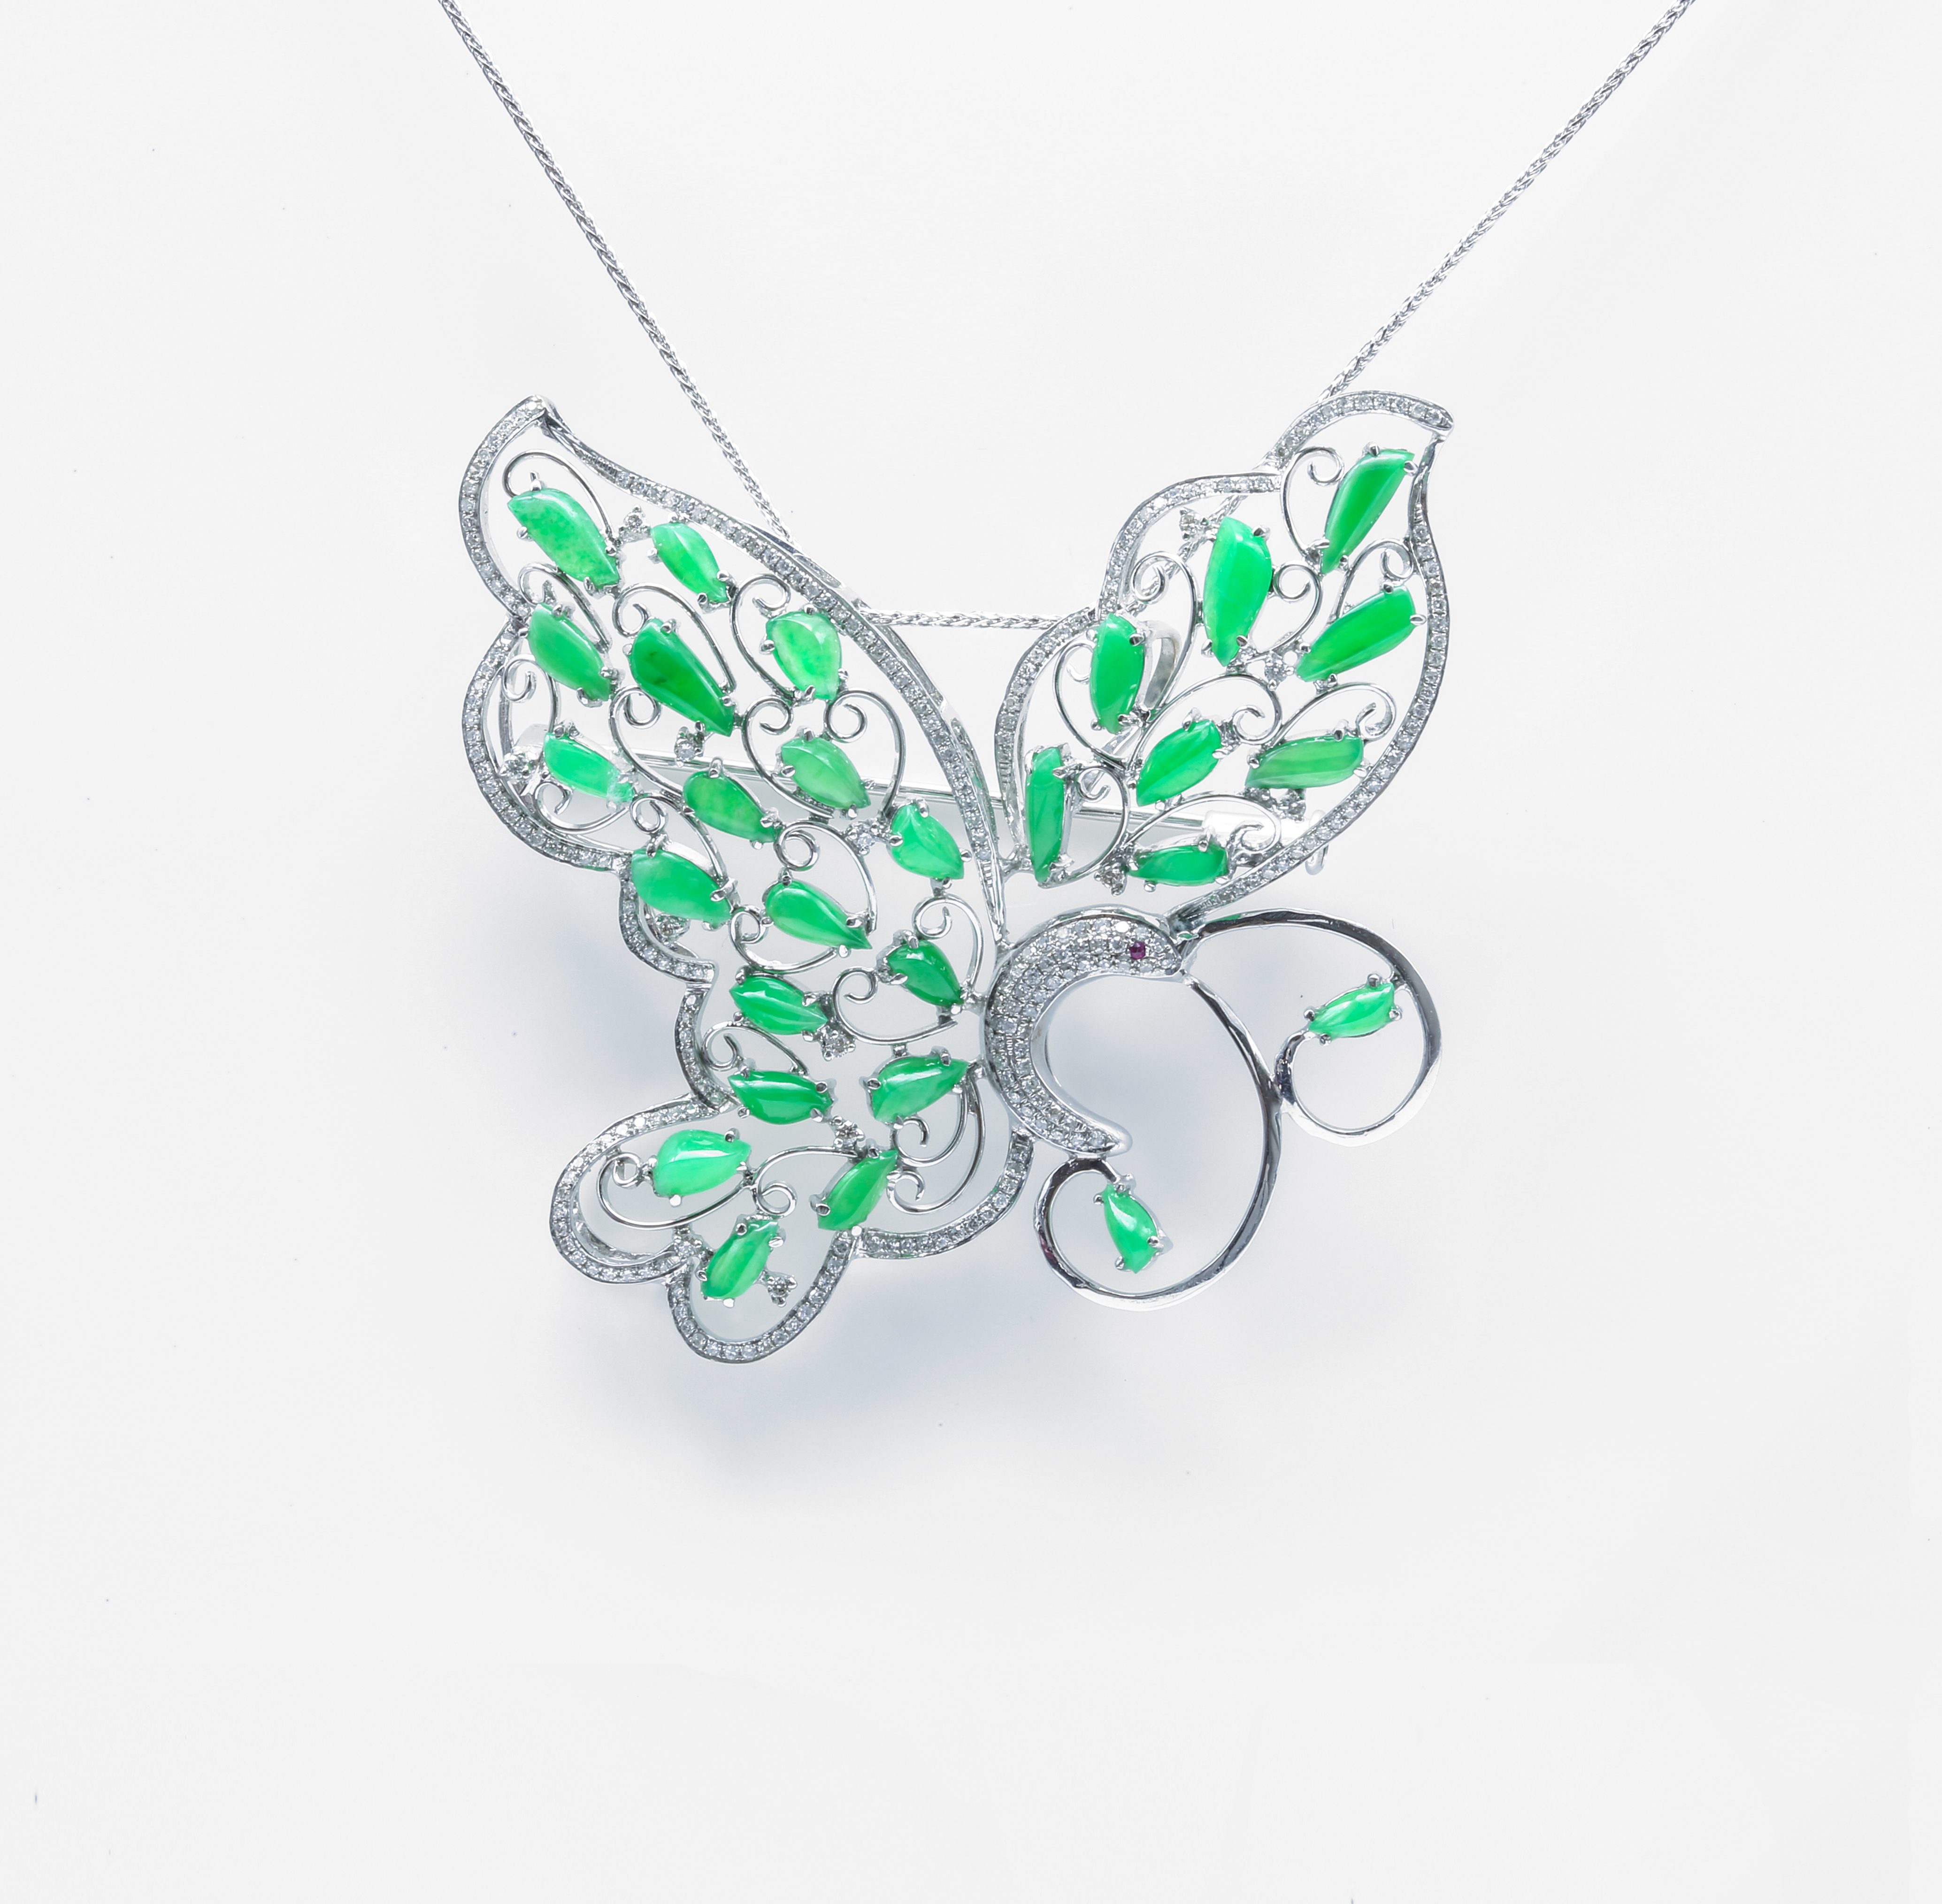 Butterfly Jadeite Jade Brooch and Pendand